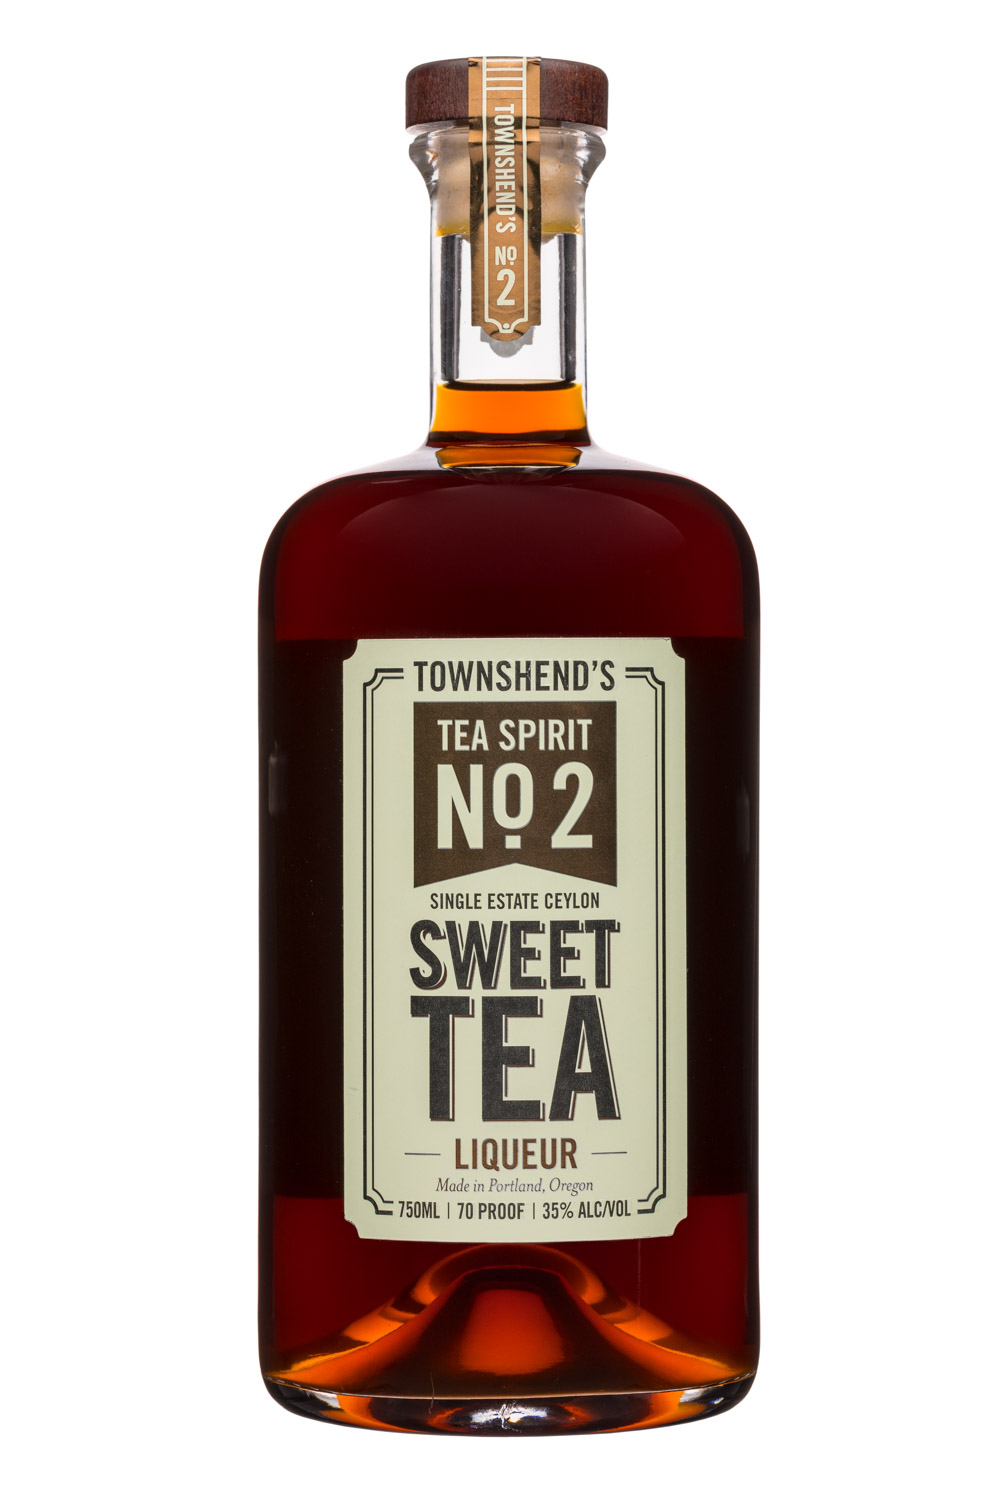 Tea Spirit No. 2 Sweet Tea